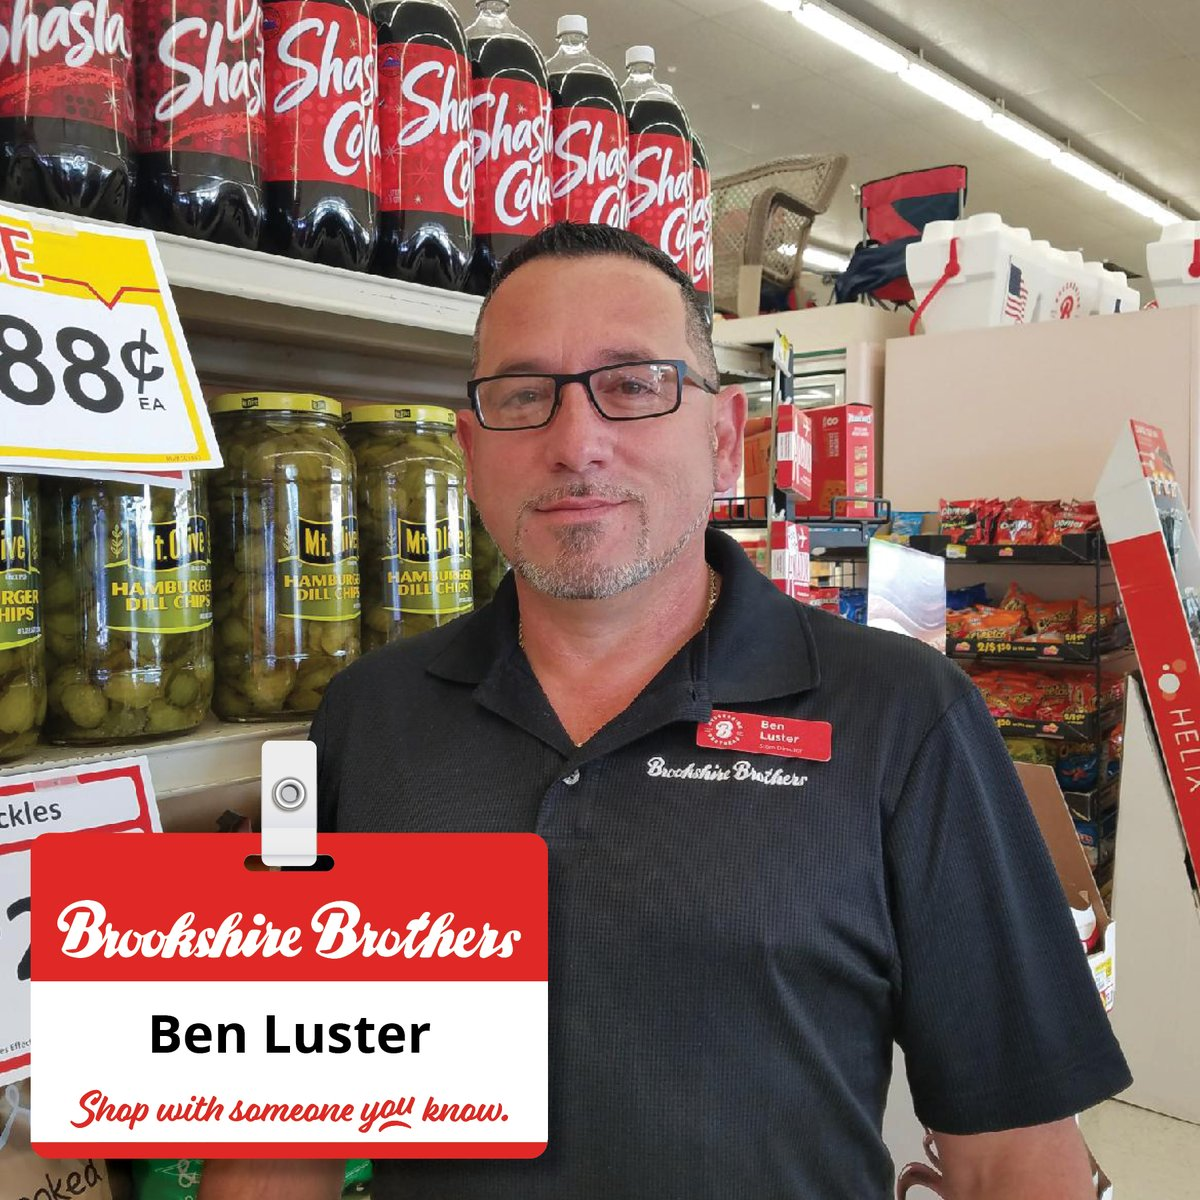 Recently Store Director Ben Luster of Rusk, TX did an amazing job helping a customer whose vehicle was hit in the parking... Read more: bit.ly/3pKTPQJ #Congratulations #ShoutoutSunday #EmployeeRecognition #BBPartner #EmployeeOwned #YourCommunityGrocerSince1921